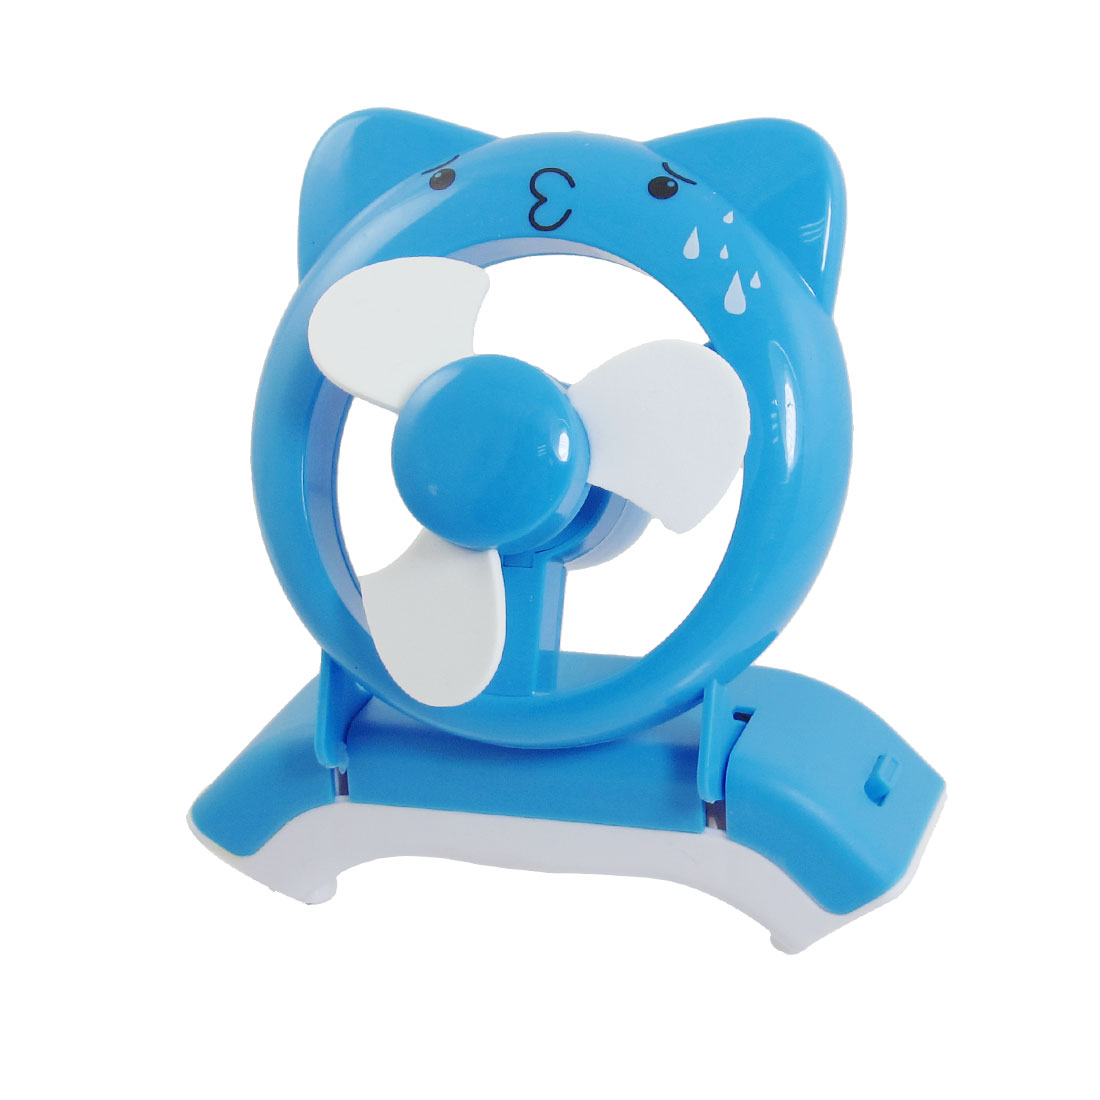 PC USB Connector Battery Powered Cartoon Bear Style Mini Desk Cooling Fan Blue